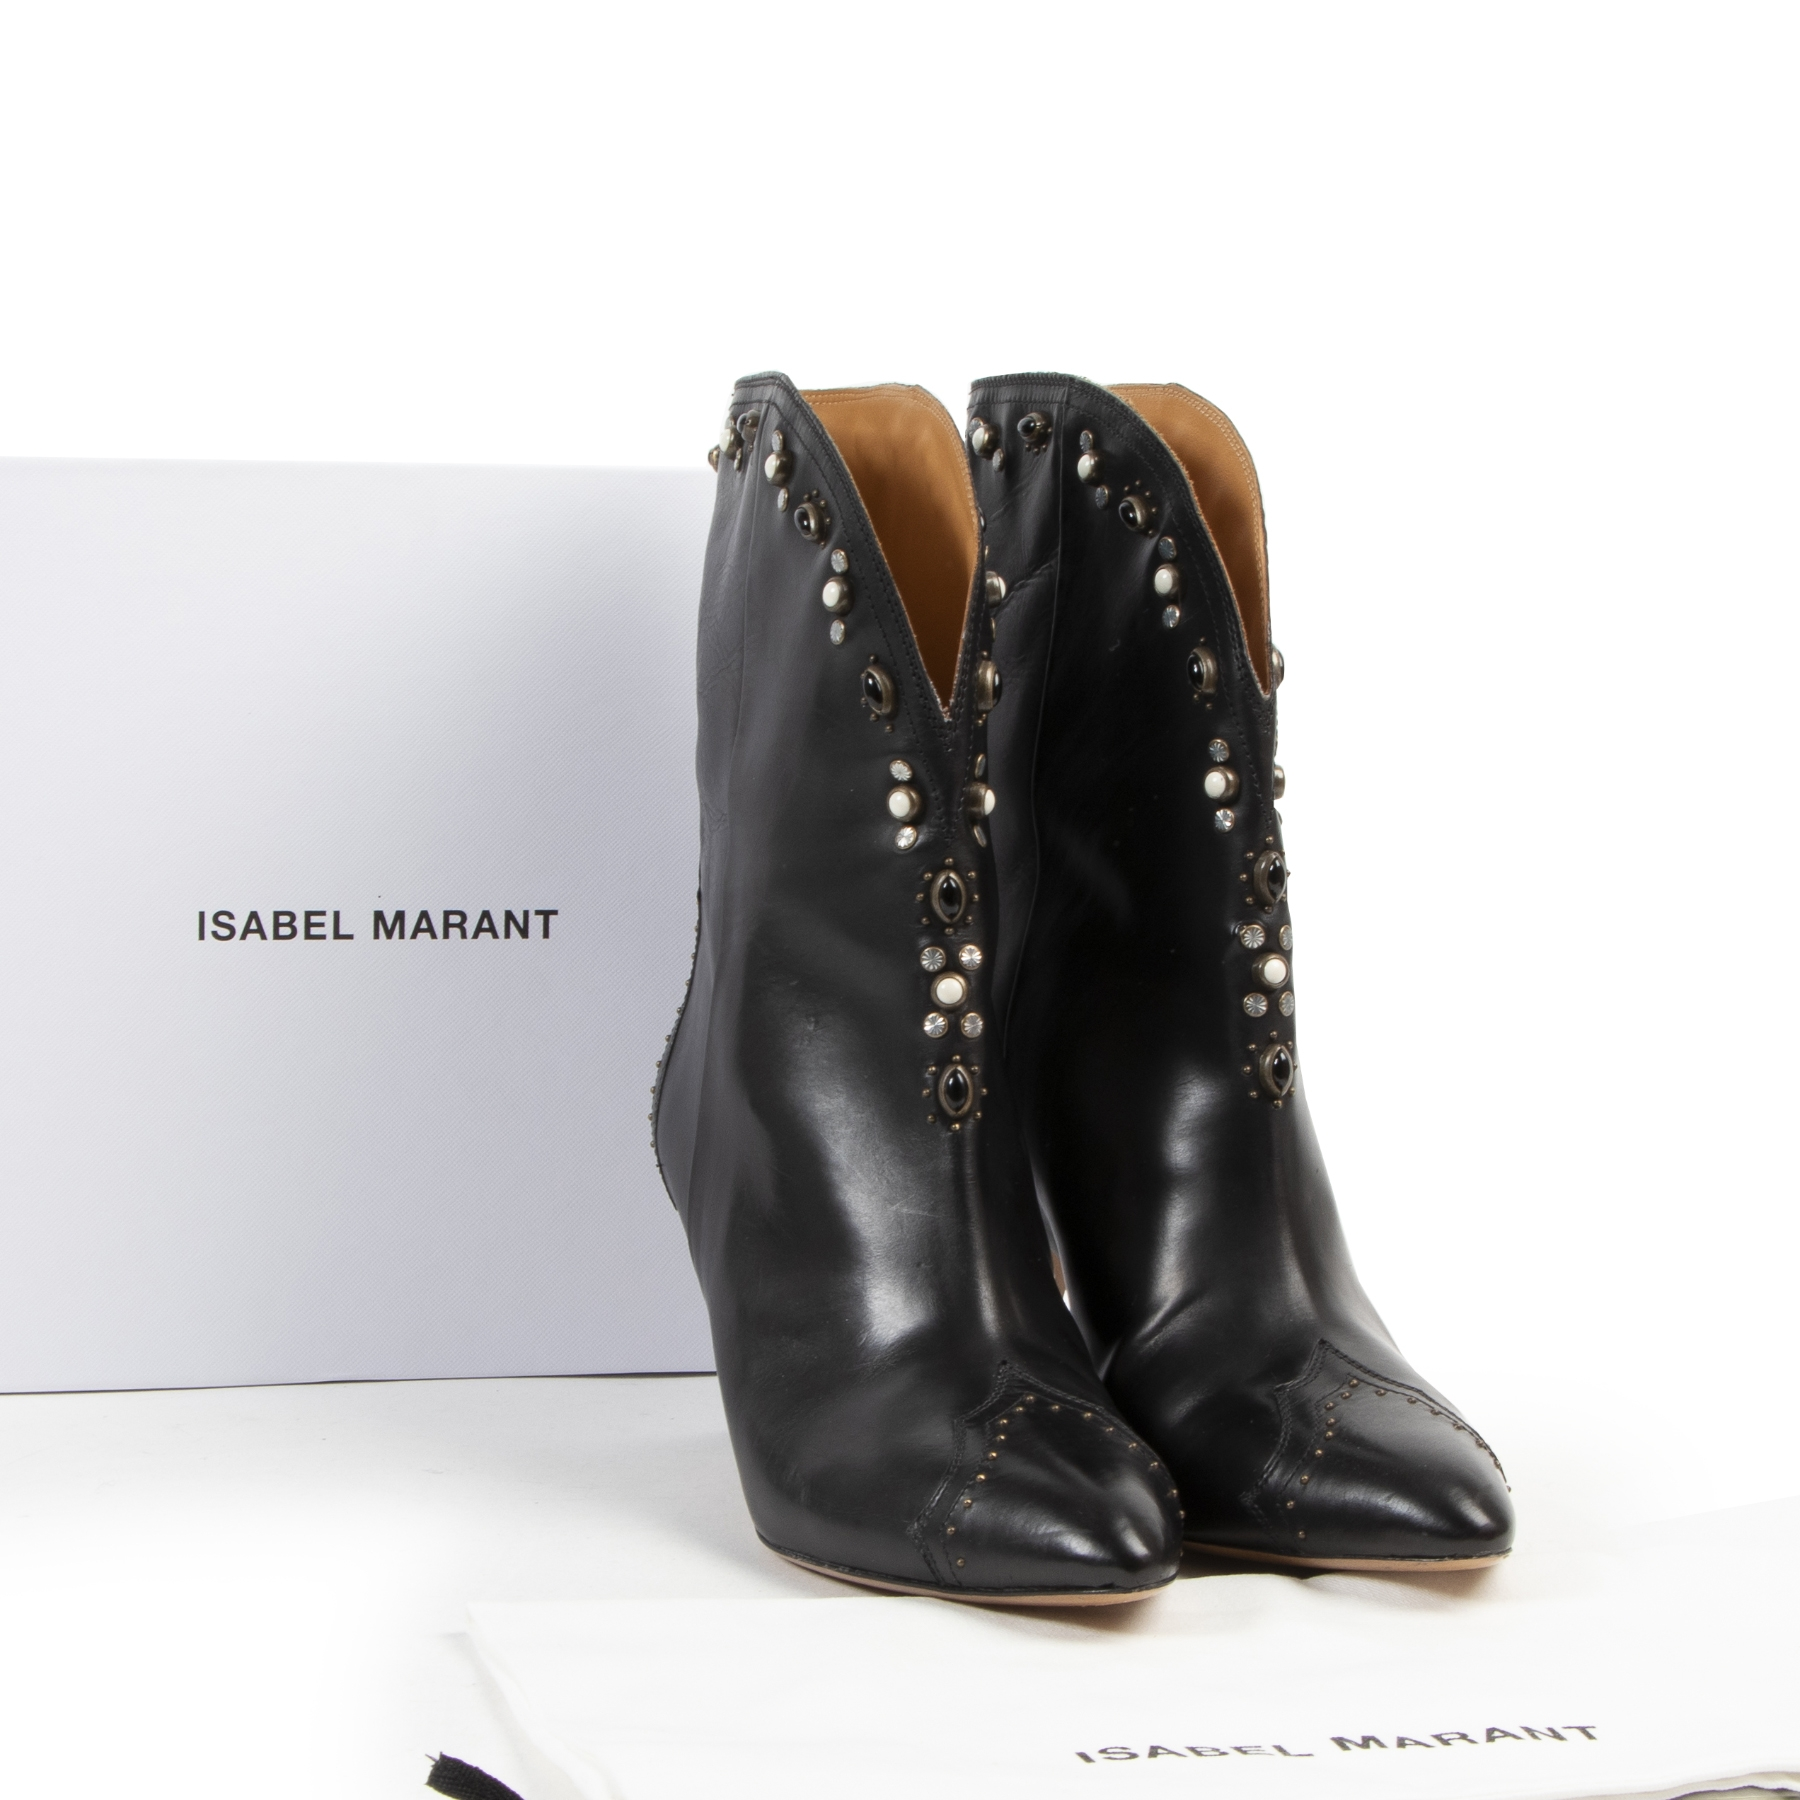 Authentic secondhand Isabel Marant Black Heeled Boots With Details - Size 41 designer bags fashion luxury vintage webshop safe secure online shopping